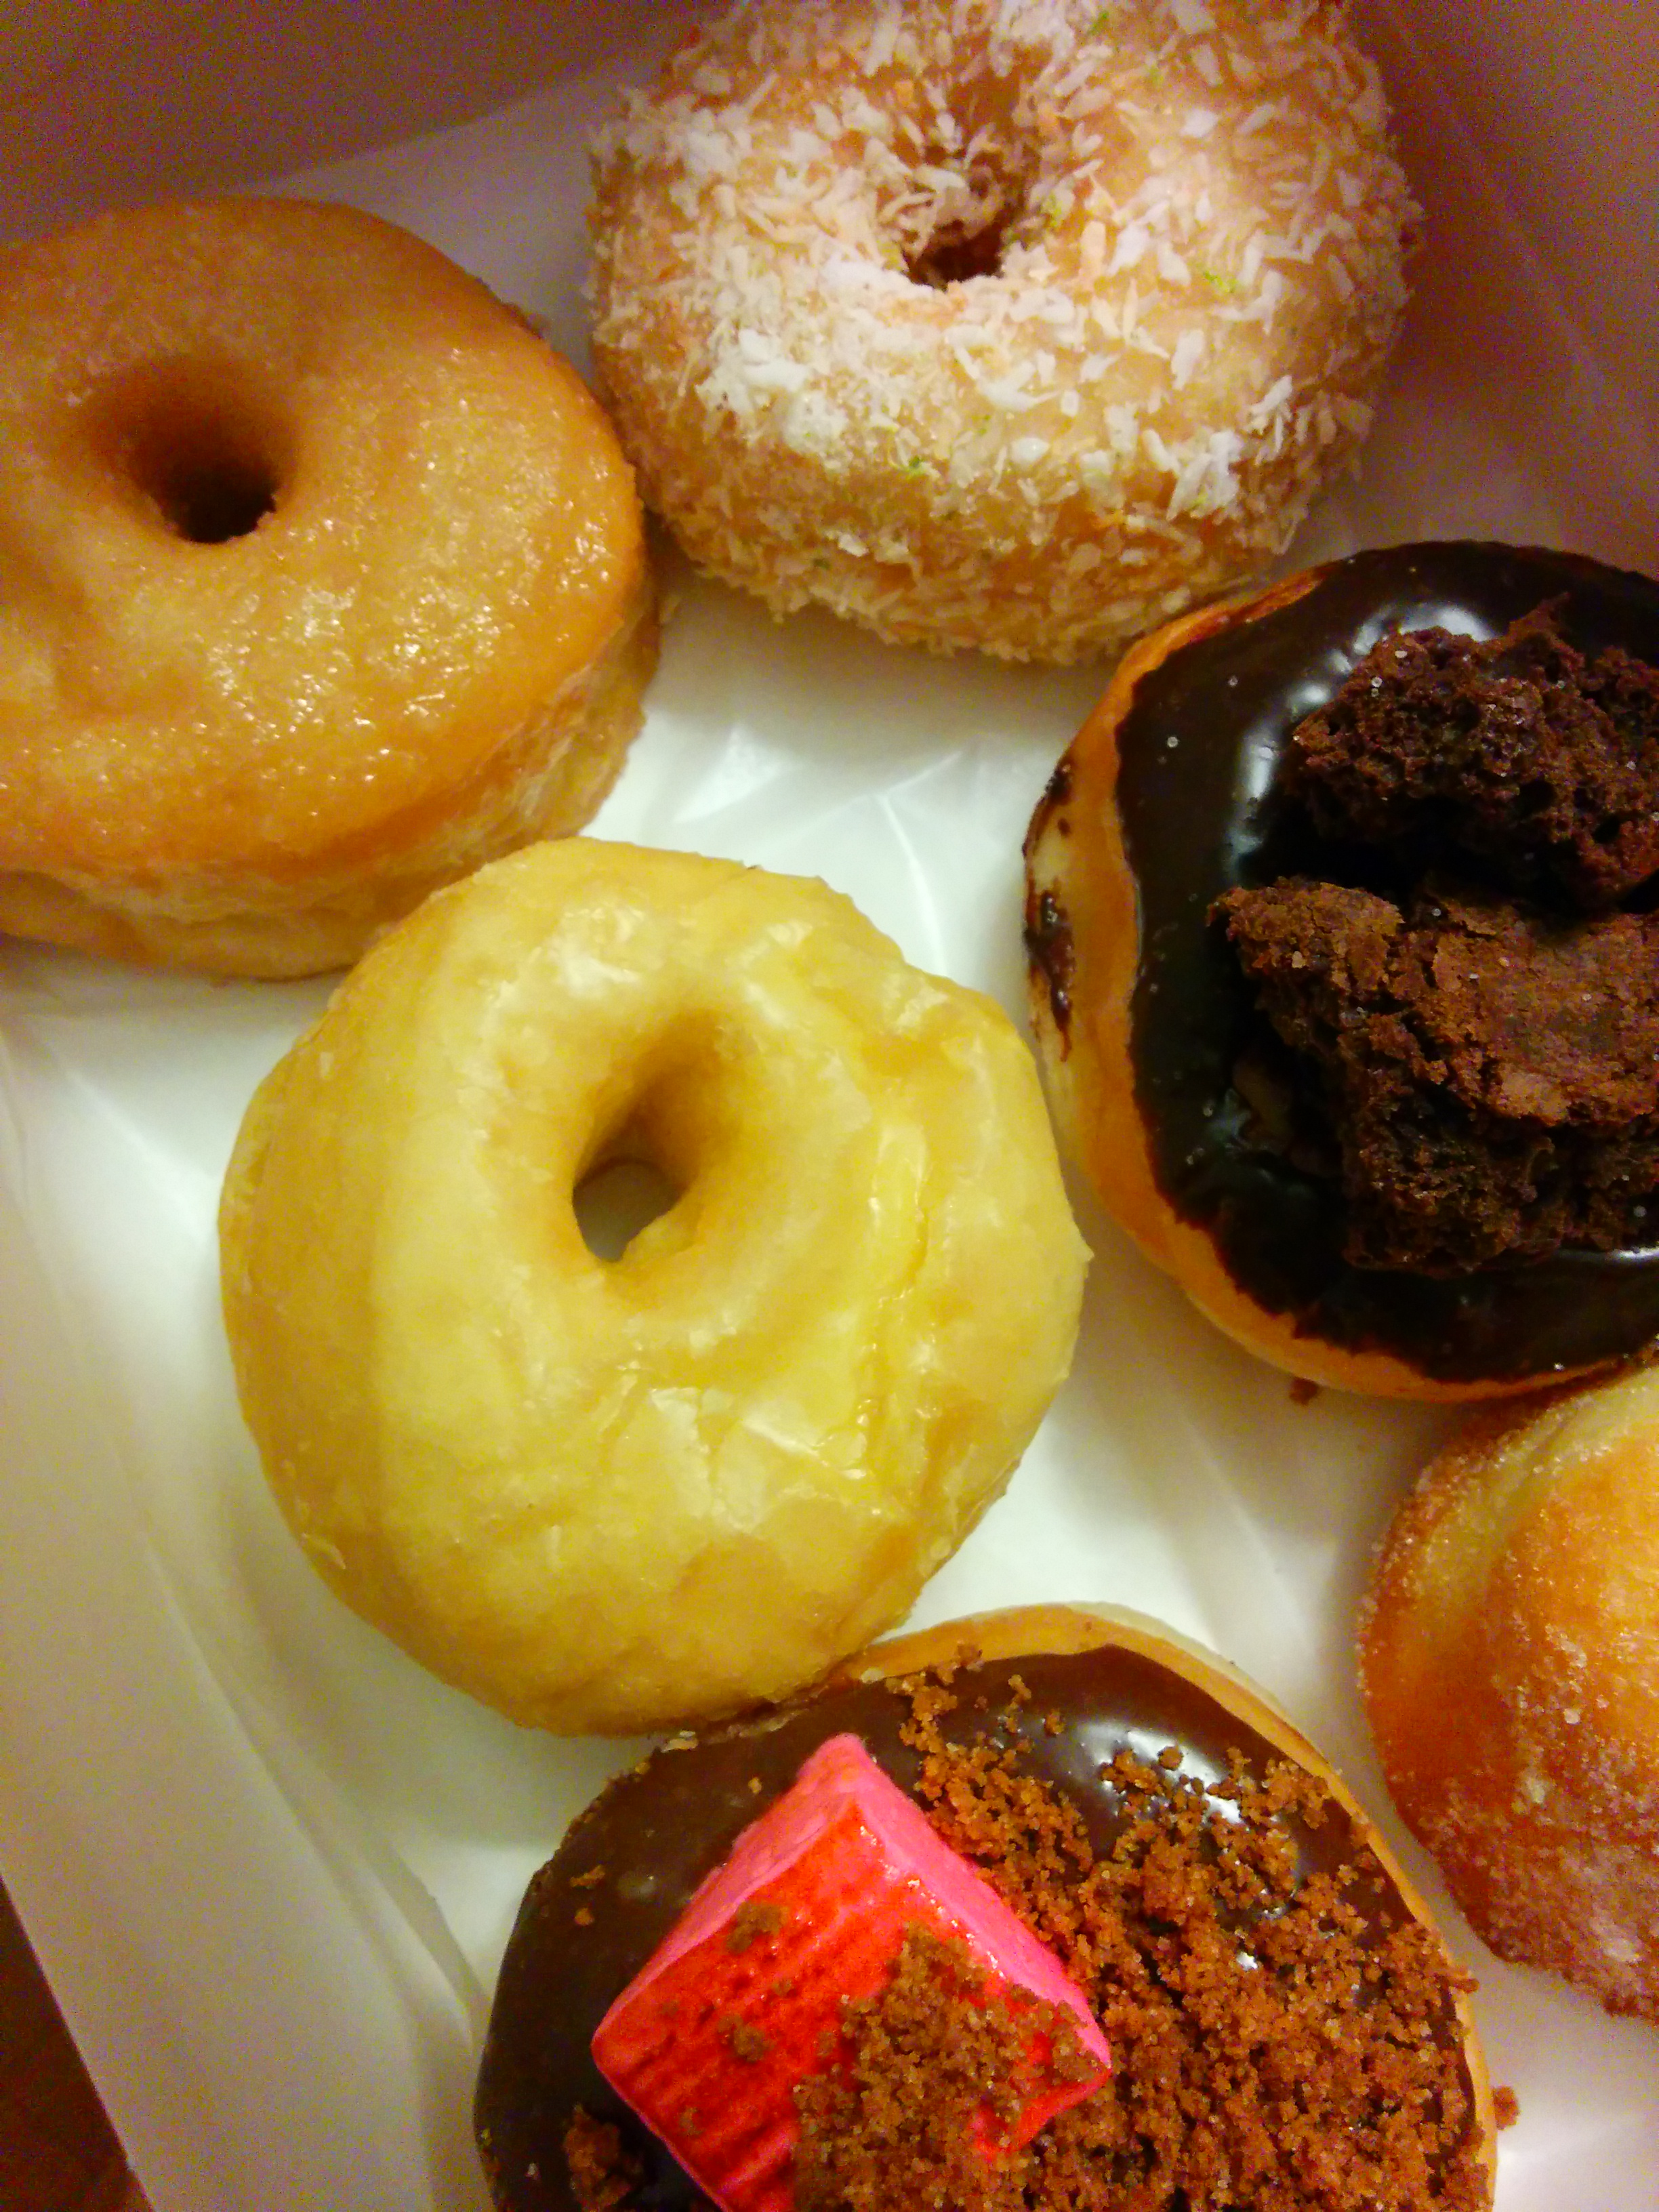 Leche Desserts: Where can you have your best donut?